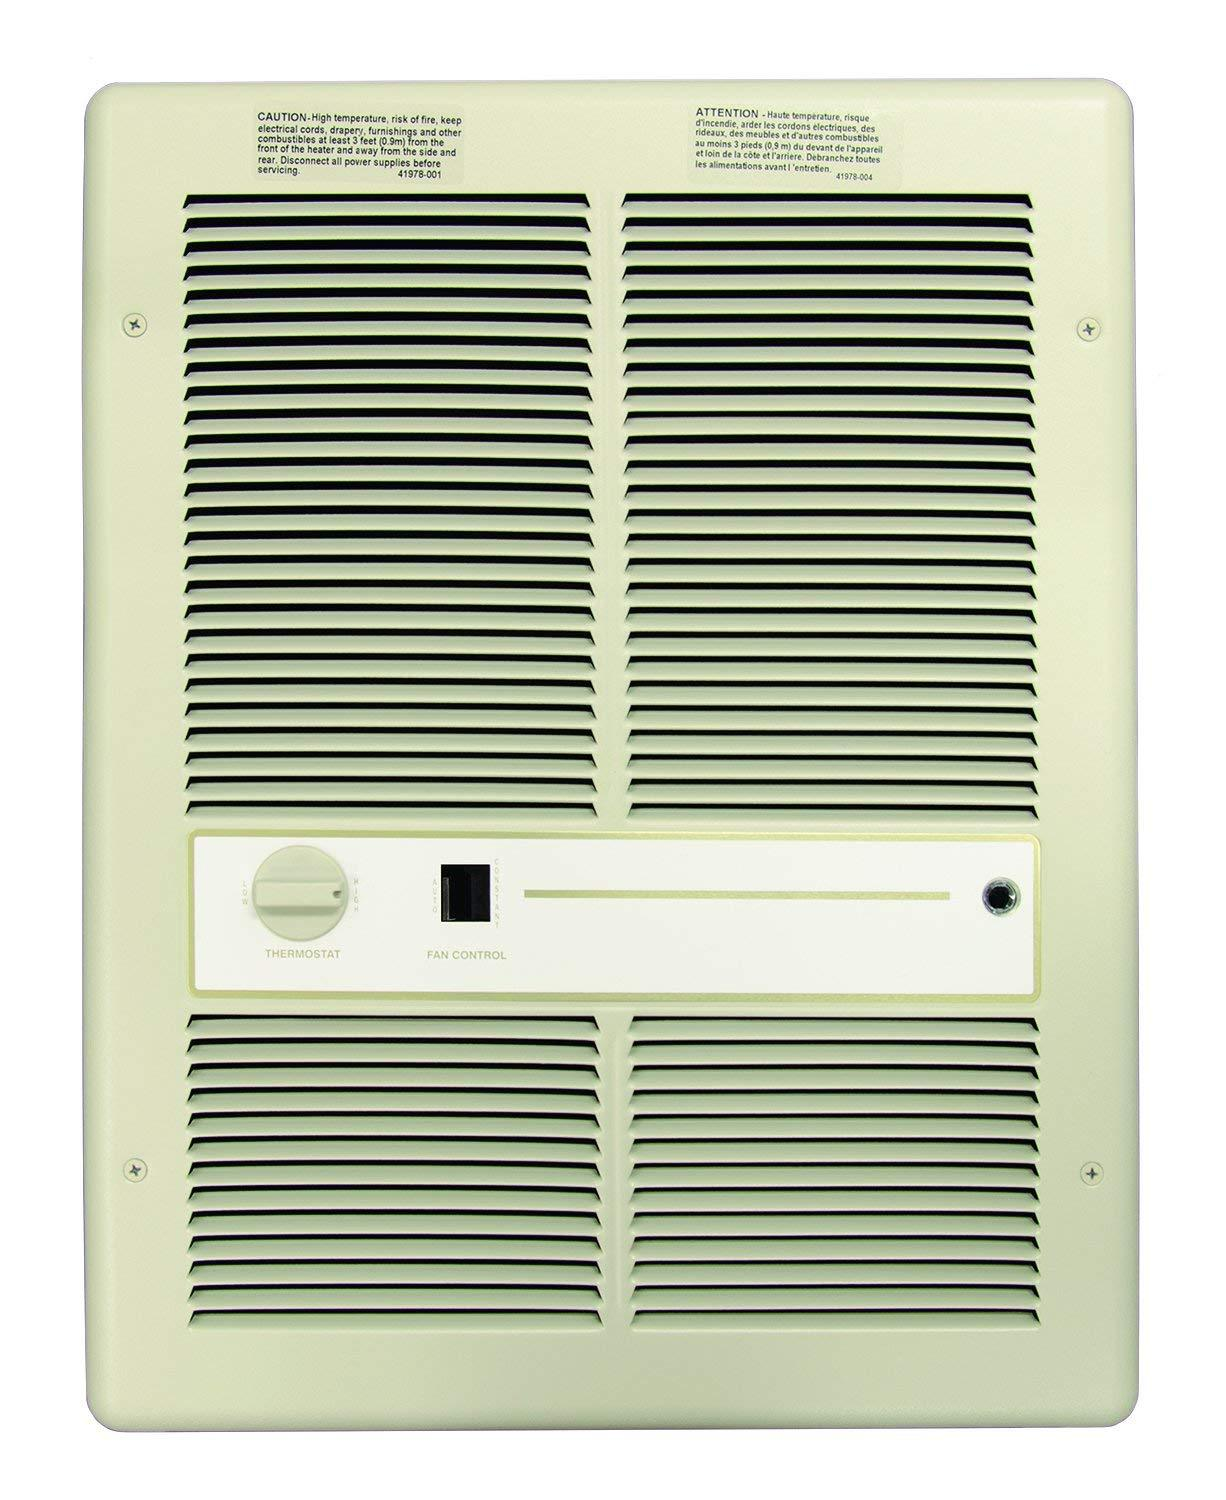 TPI- 4800W 208V Fan Forced Wall Heater With Summer Fan Switch- Double Pole Thermostat- Ivory - F3317T2SRP